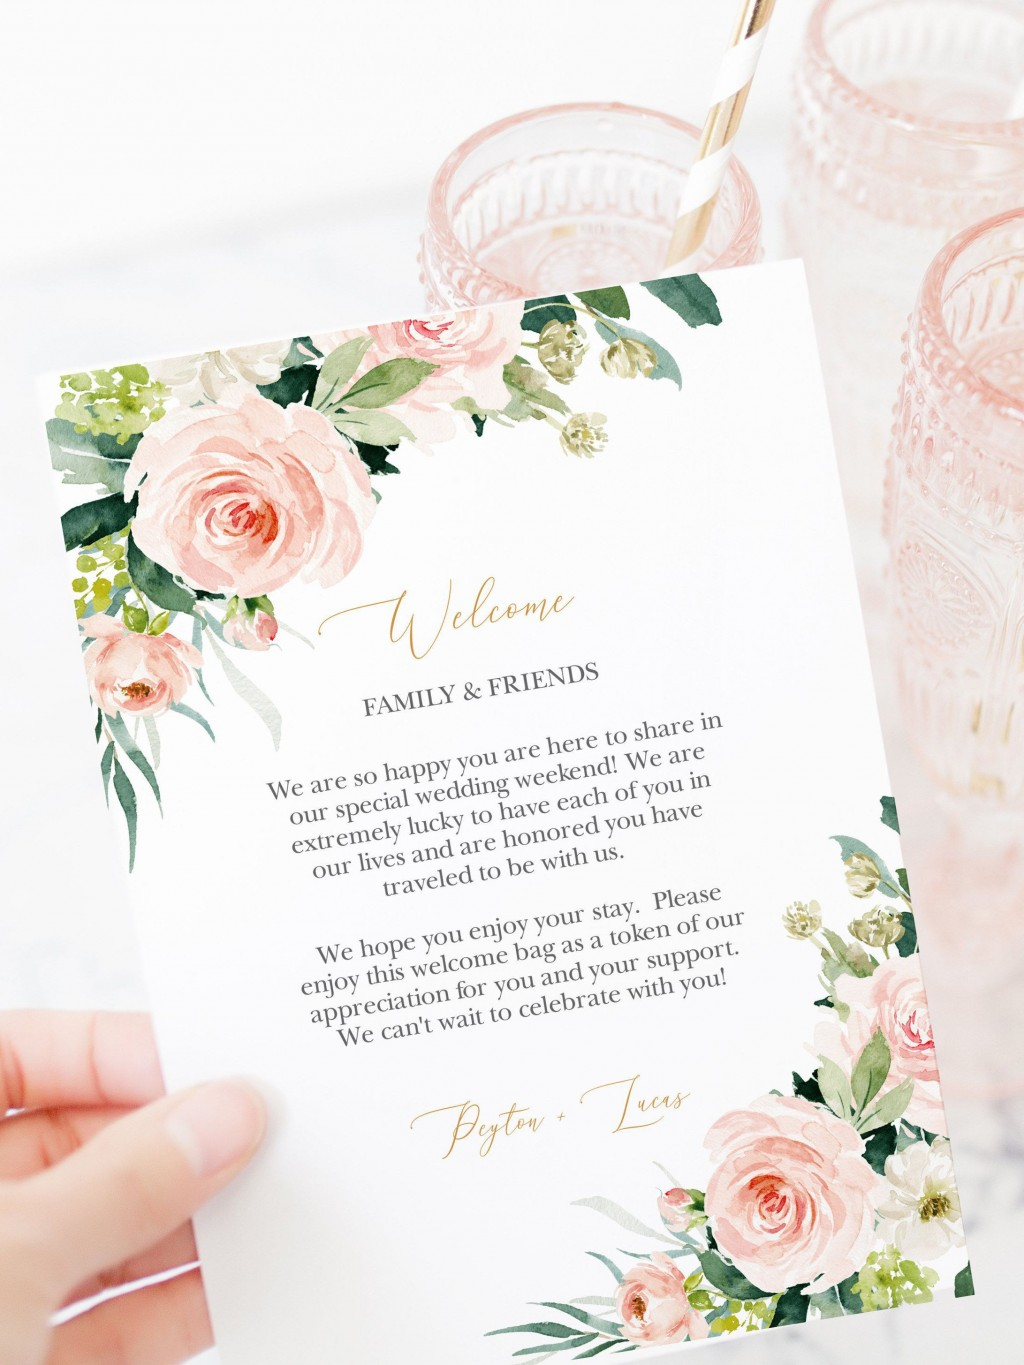 001 Striking Wedding Welcome Letter Template Download Example Large